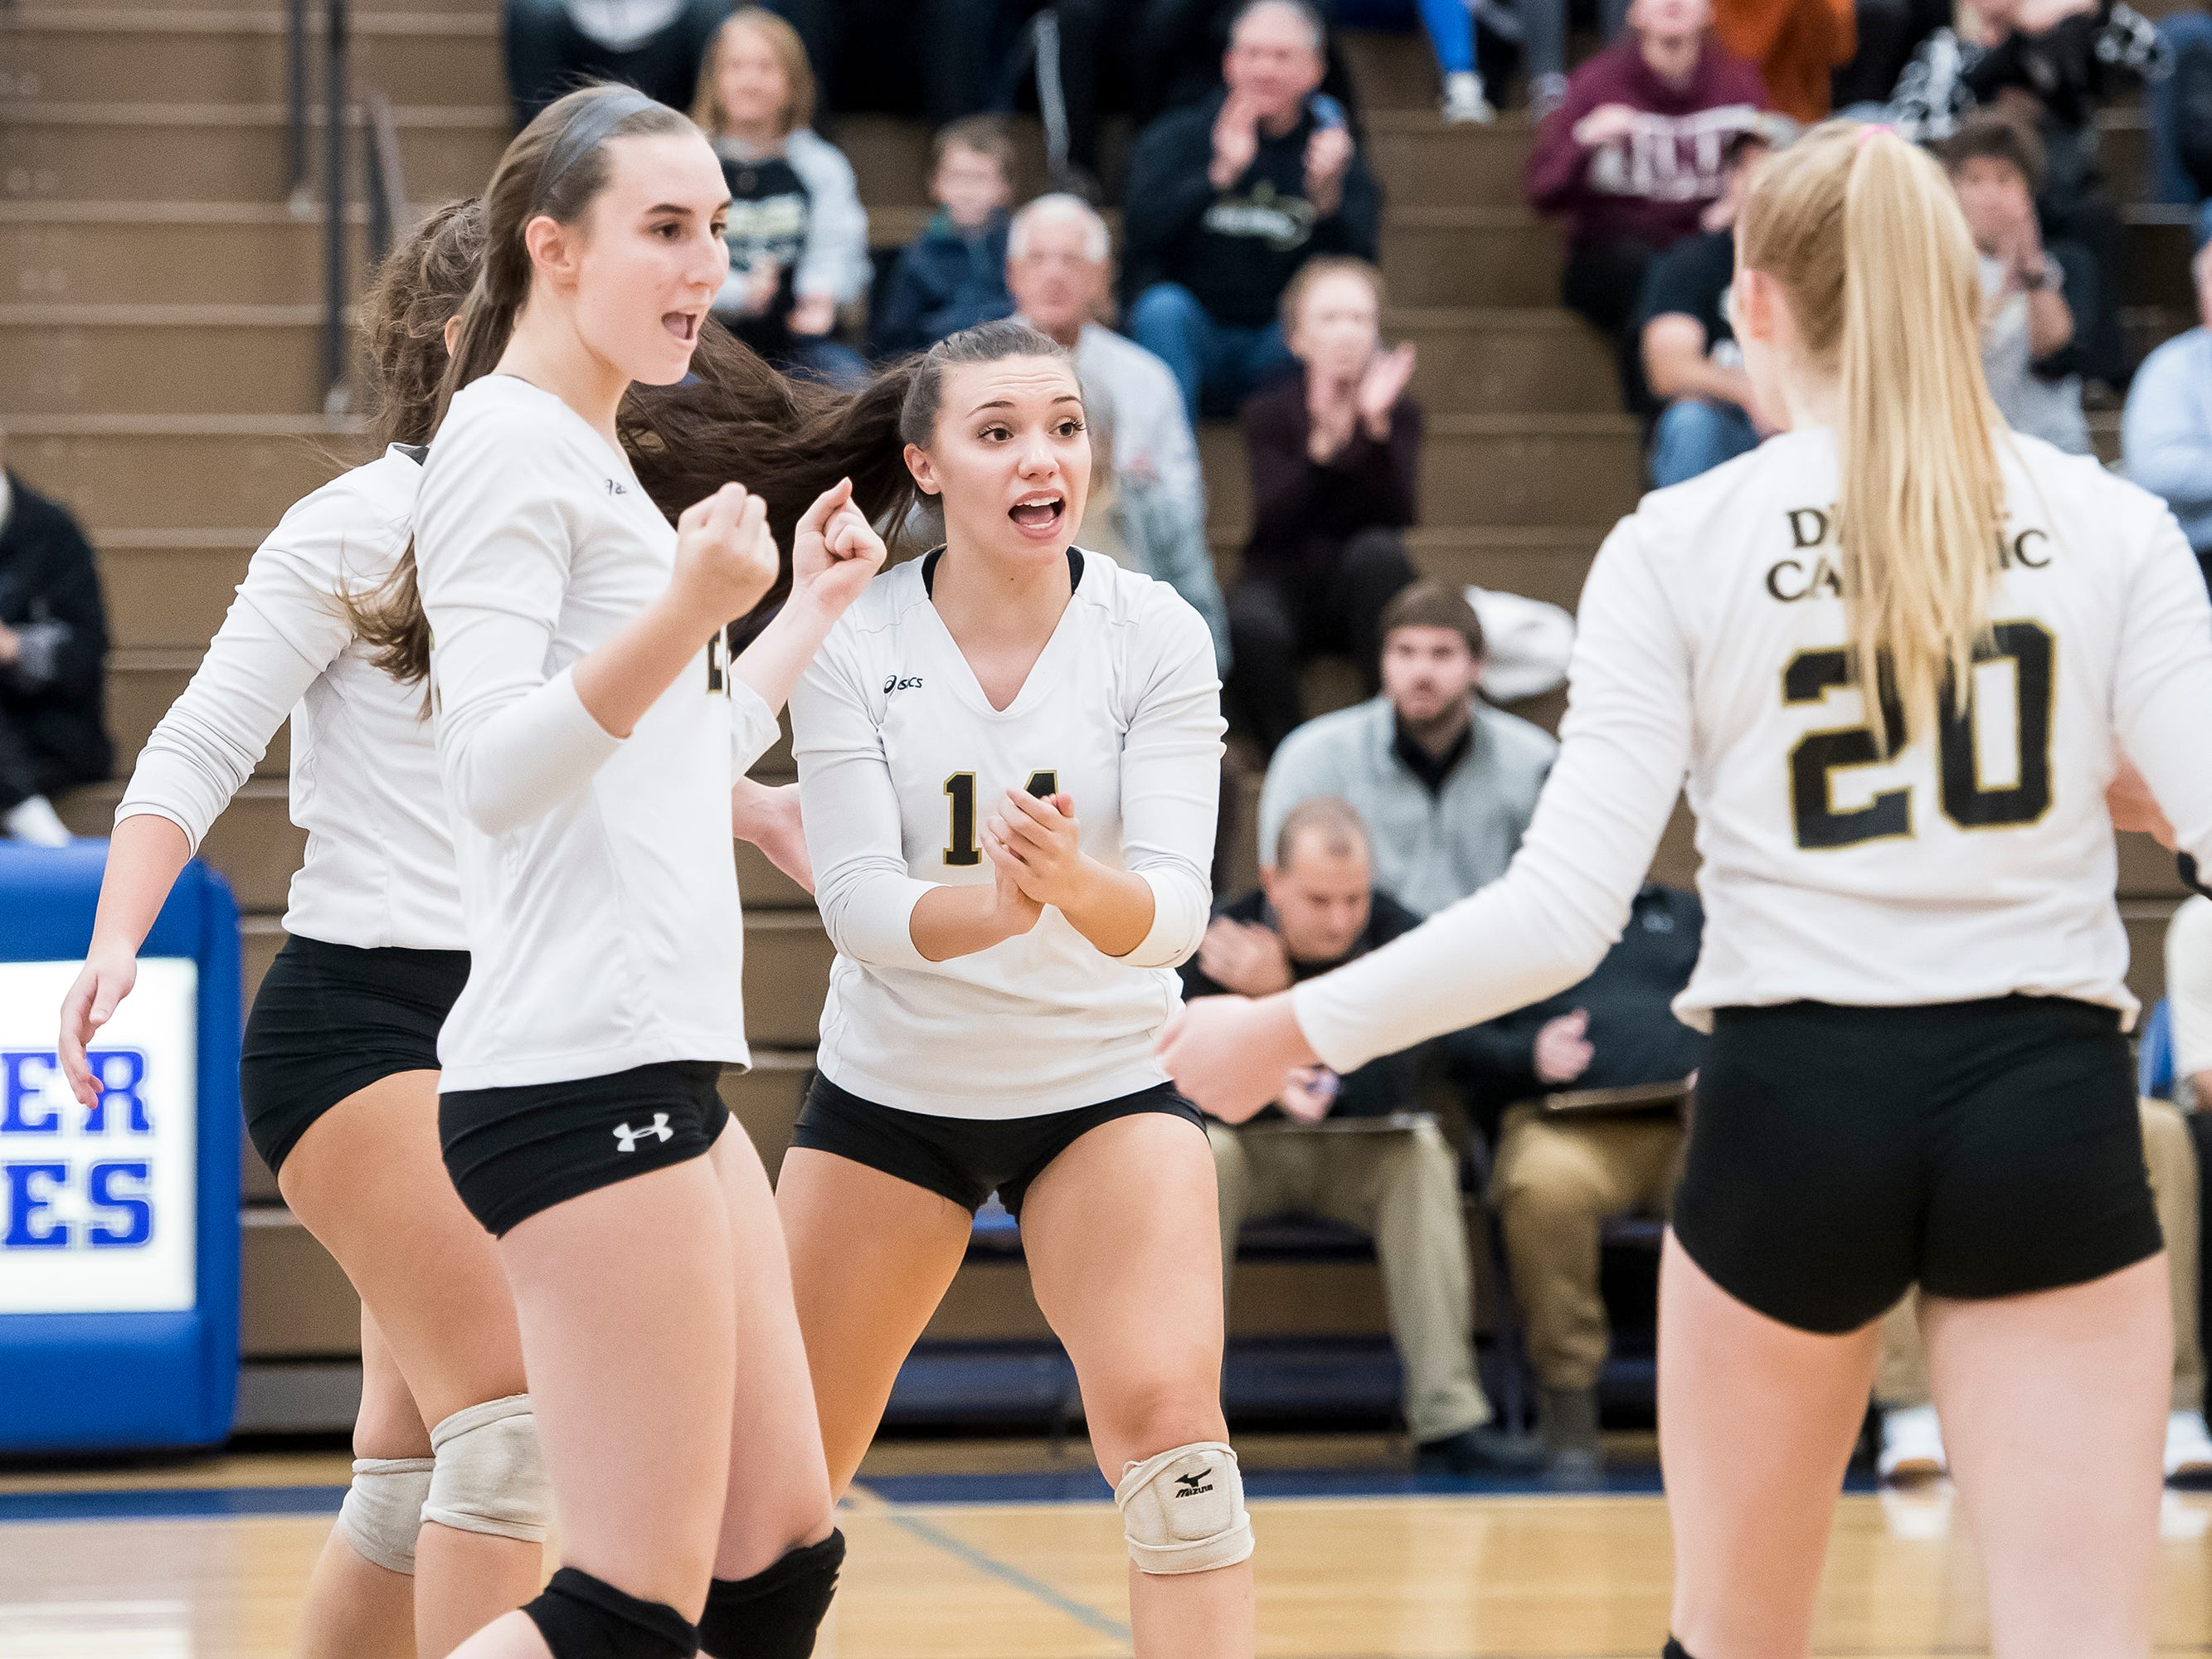 Delone Catholic players react after scoring a point against Holy Redeemer in a PIAA 2A semifinal game at Exeter Township High School in Reading on Tuesday, November 13, 2018. The Squires fell in five sets; 23-25, 25-13, 25-13, 18-25, 15-10.